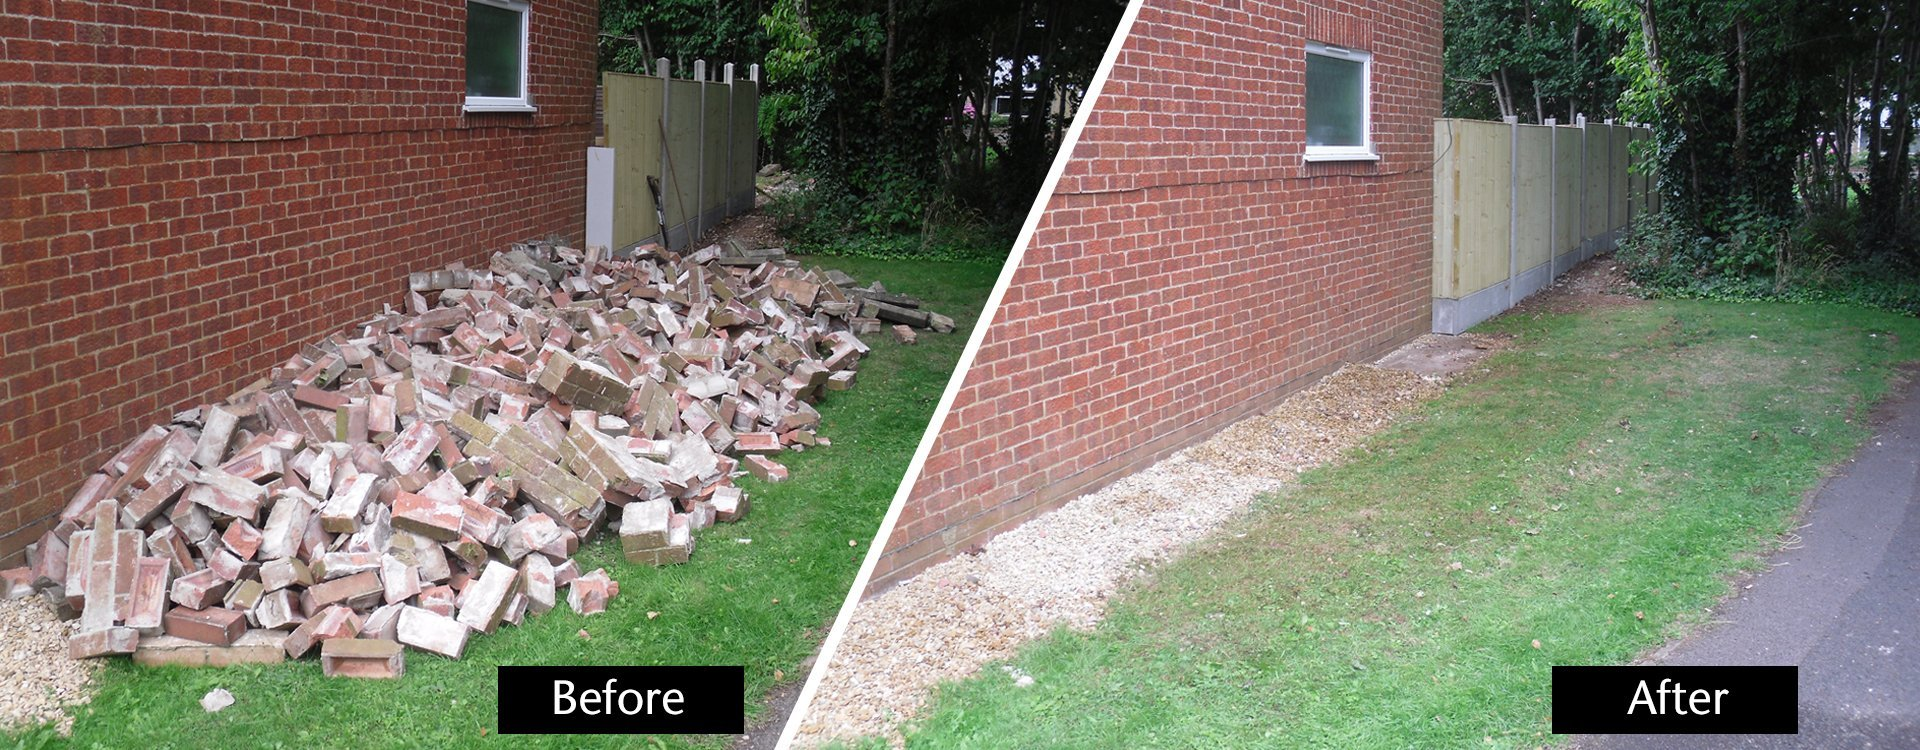 bricks before and after removal